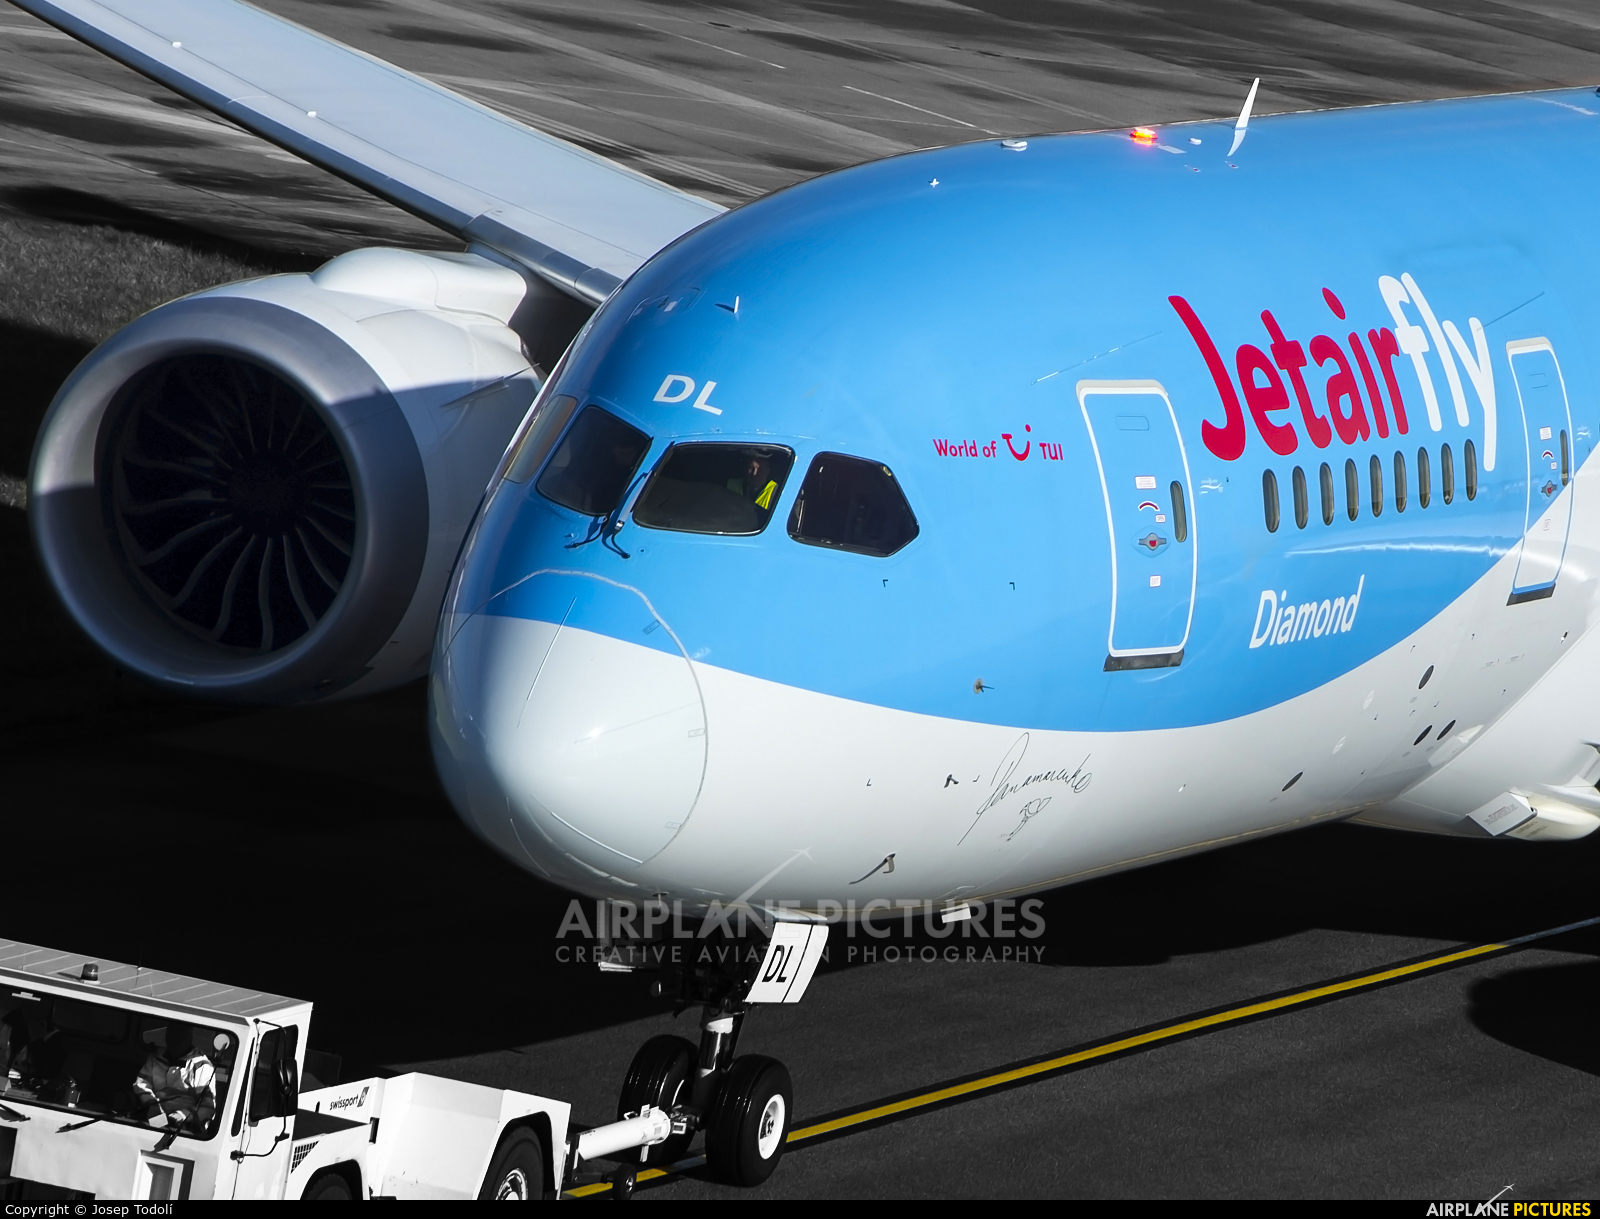 Jetairfly (TUI Airlines Belgium) OO-JDL aircraft at Manchester